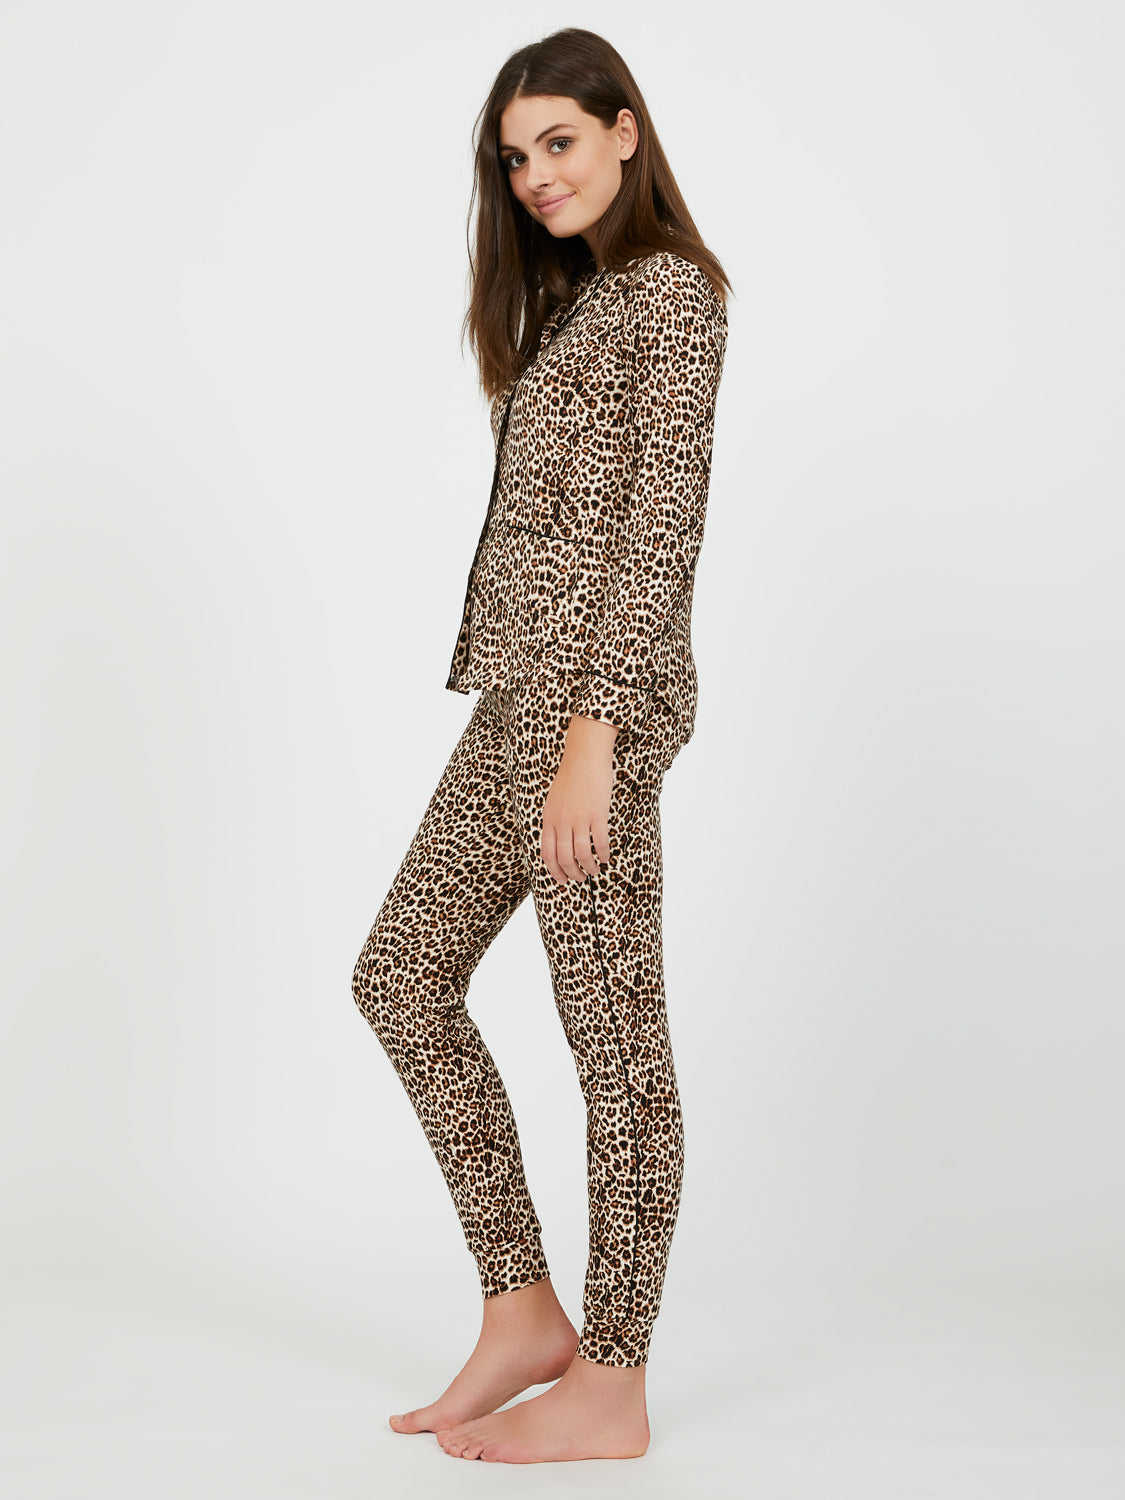 2-Piece Animal Print Pyjama Set